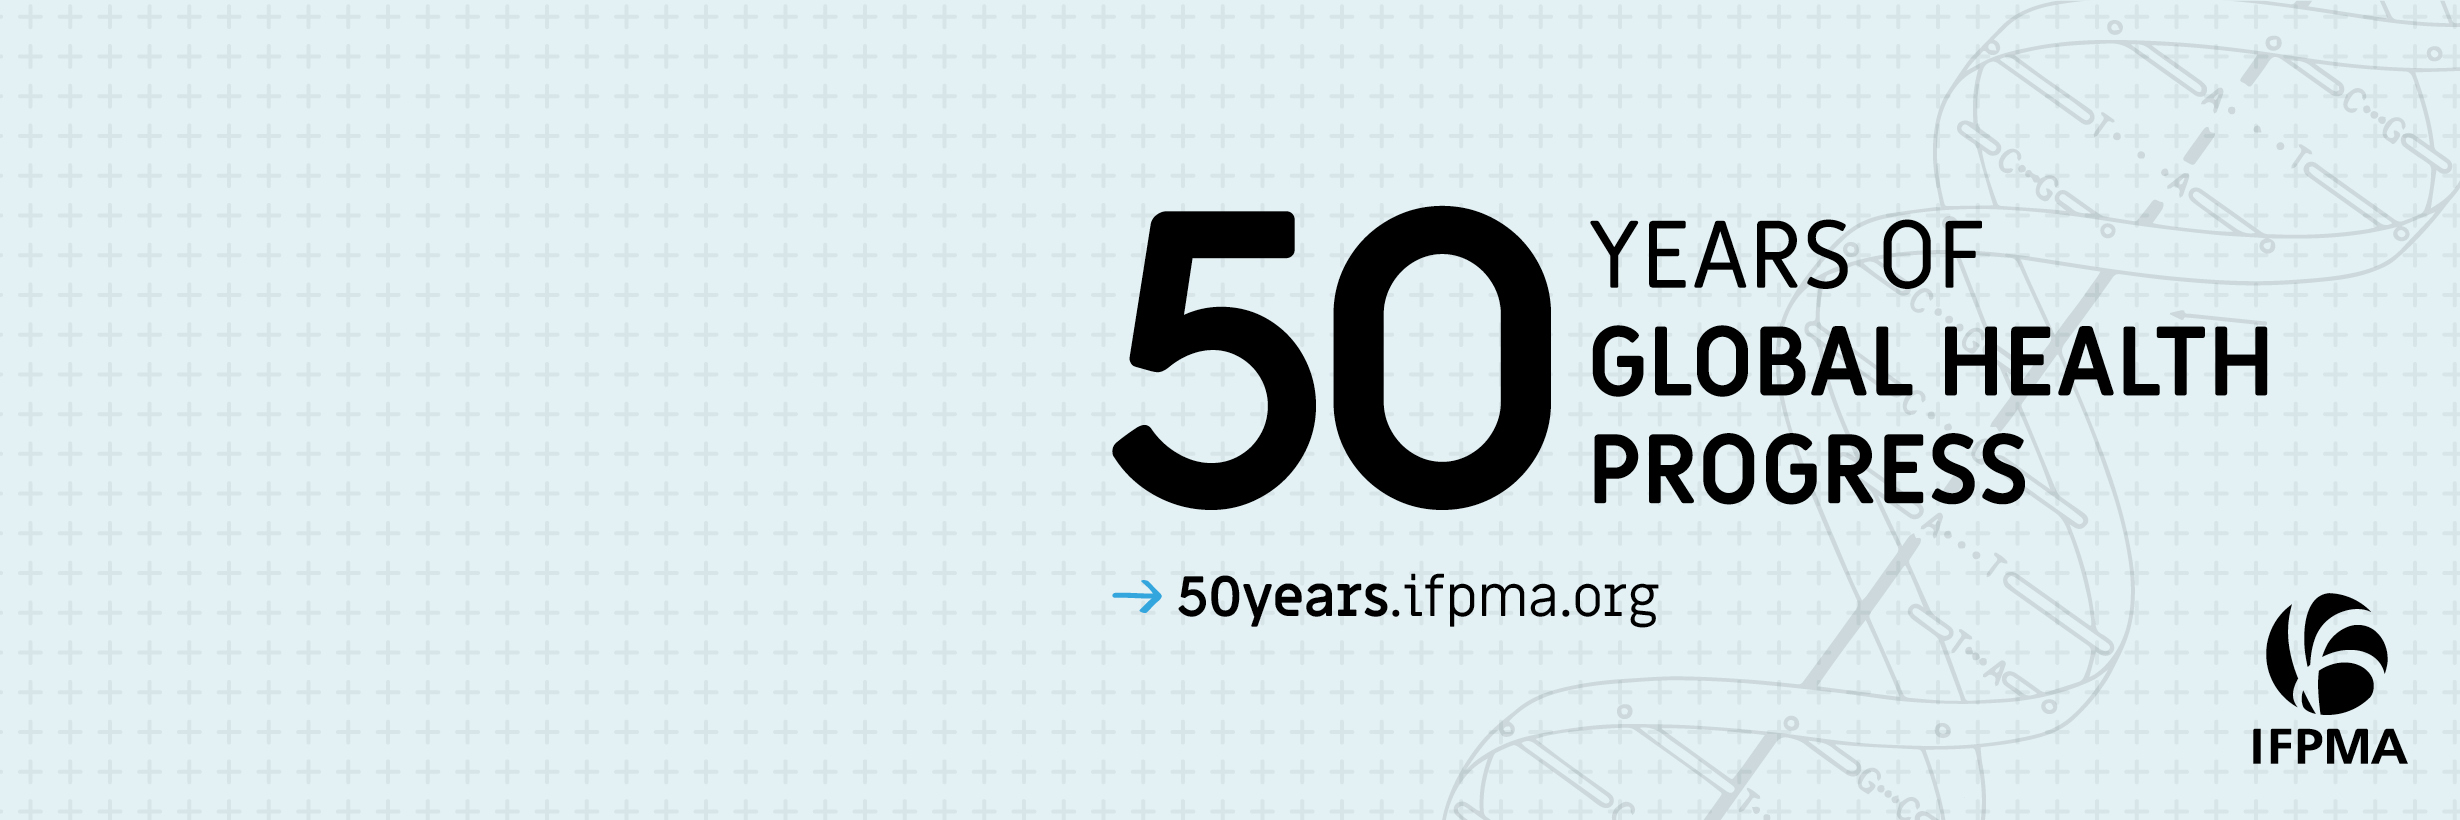 IFPMA@50 ideo: 50 years of global health progress